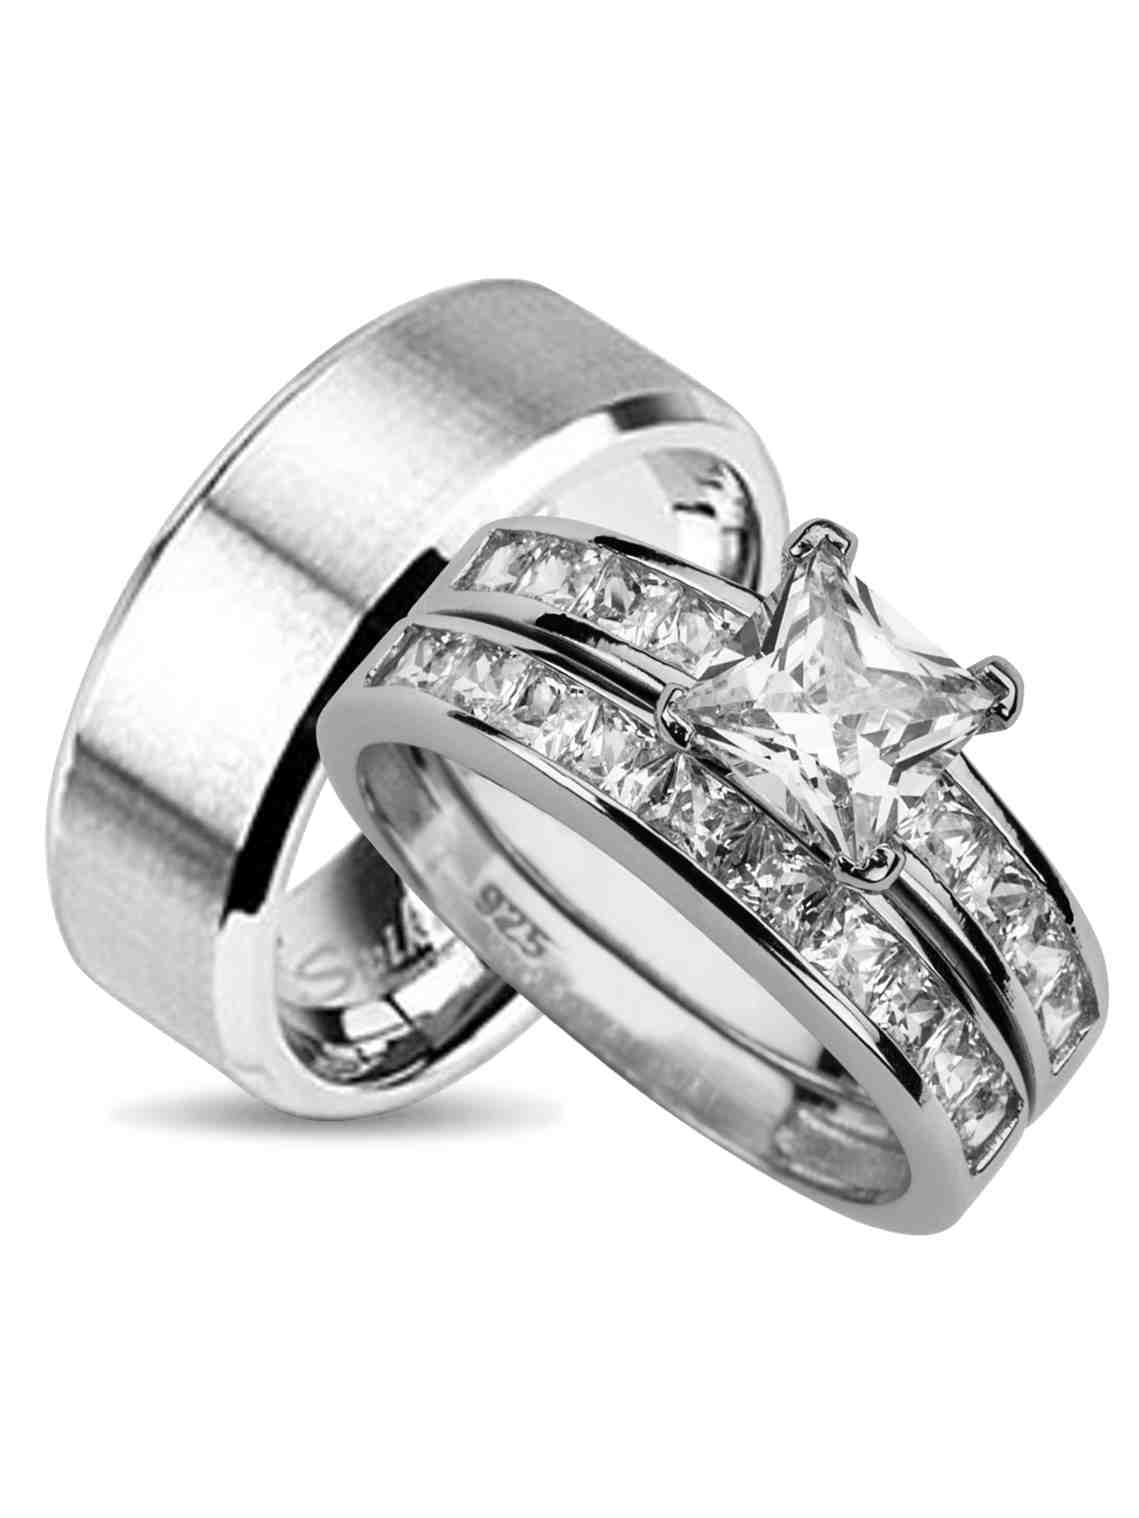 laraso co his and hers wedding ring set matching wedding bands for him and her 7 7 walmart com